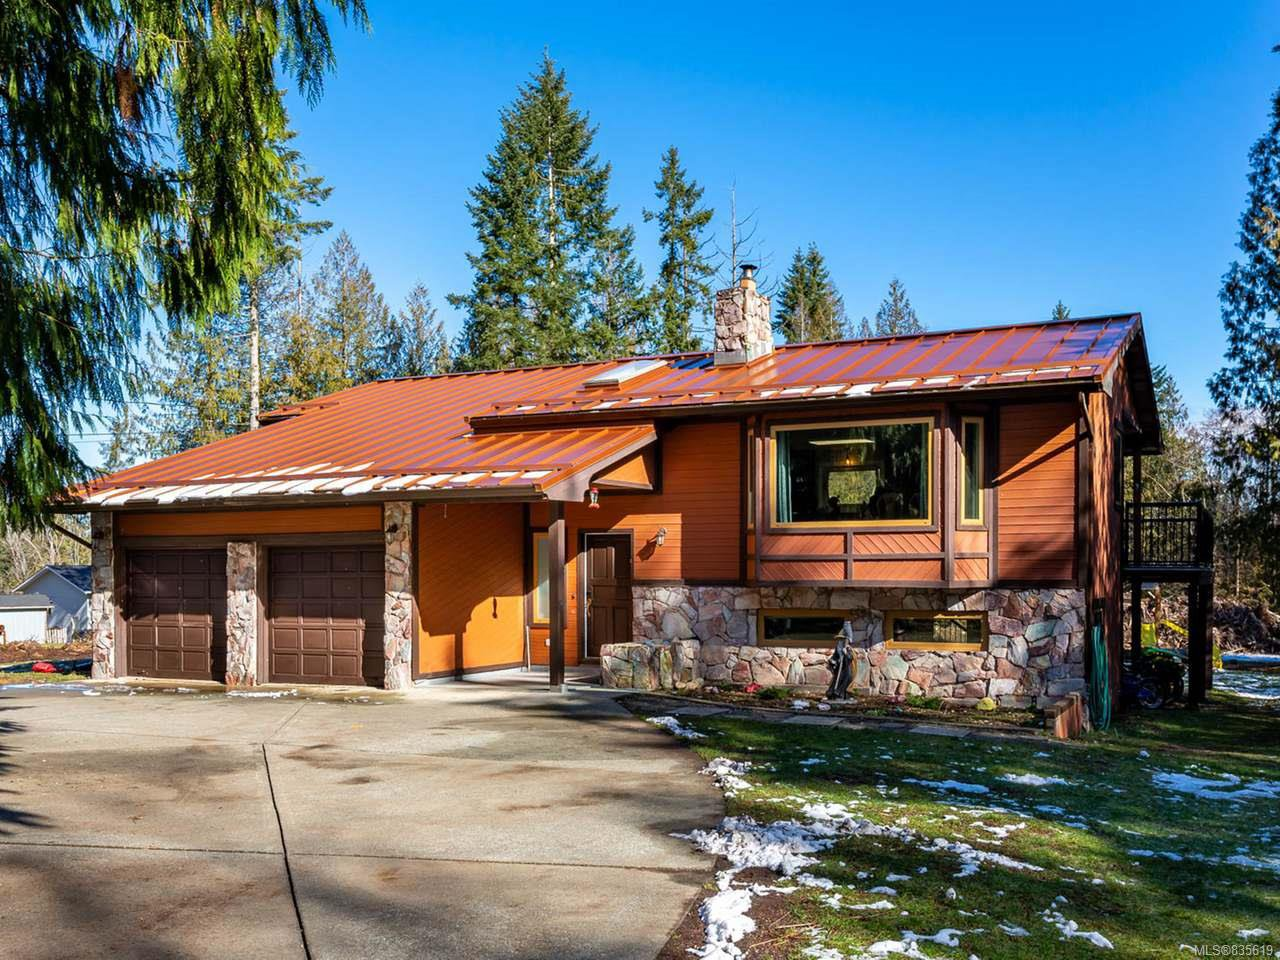 Main Photo: 4242 Marsden Rd in COURTENAY: CV Courtenay West House for sale (Comox Valley)  : MLS®# 835619